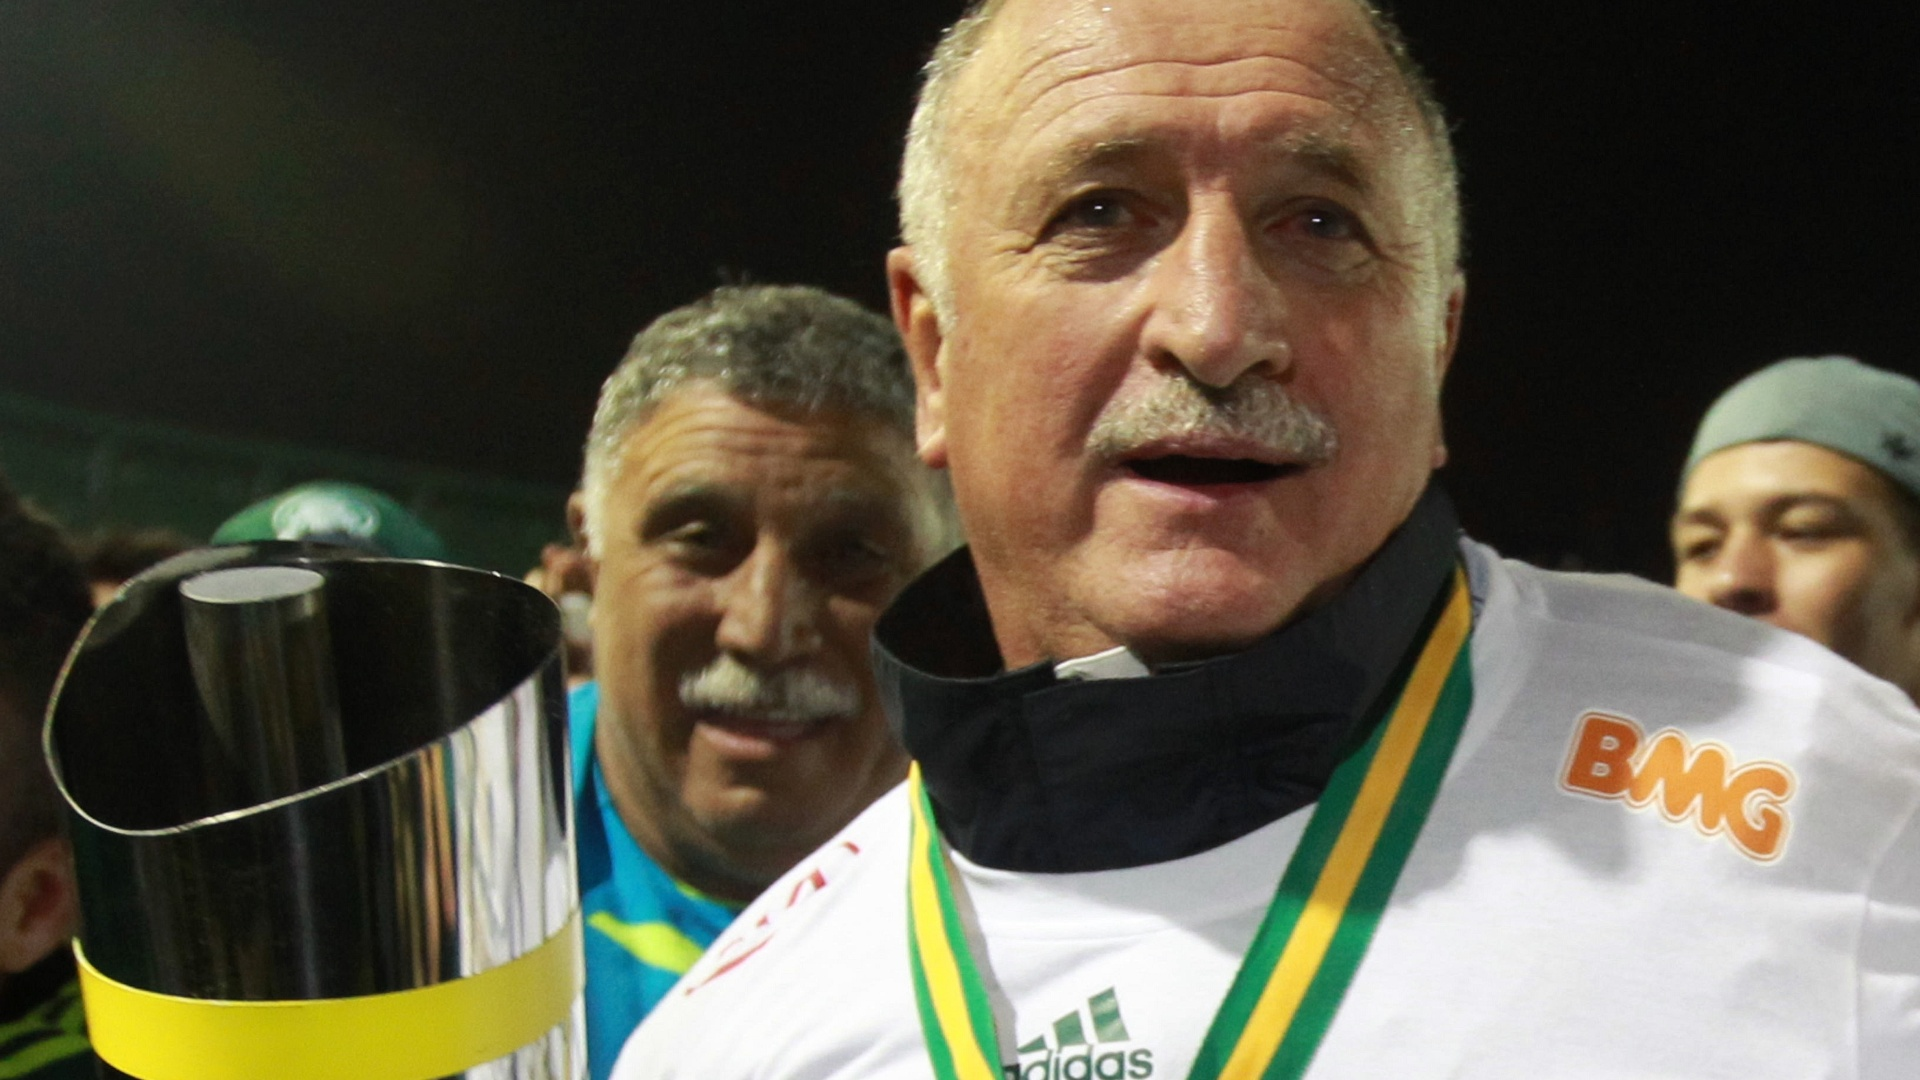 Luiz Felipe Scolari comemora conquista do ttulo da Copa do Brasil pelo Palmeiras